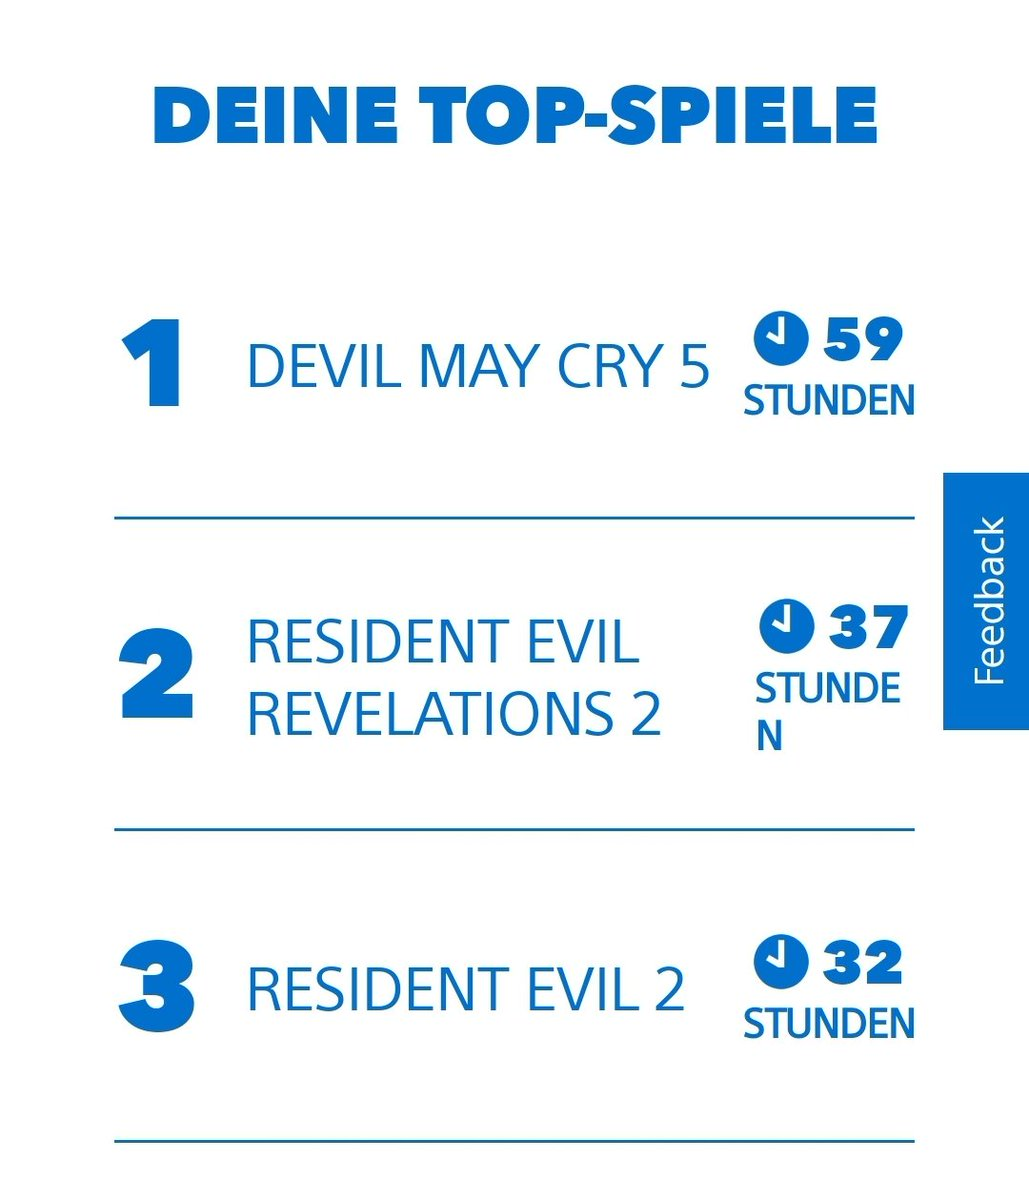 Glad to see DMC5 on top of the list! But man, I got weak. Cosplay and other things keep me from playing games. I need to change that and balance all my hobbies better  Rev2 online is no surprise and my top game no. 4 is definitely the Goat Simulator  #MyPSYear2019 <br>http://pic.twitter.com/DgKWaf1o9J